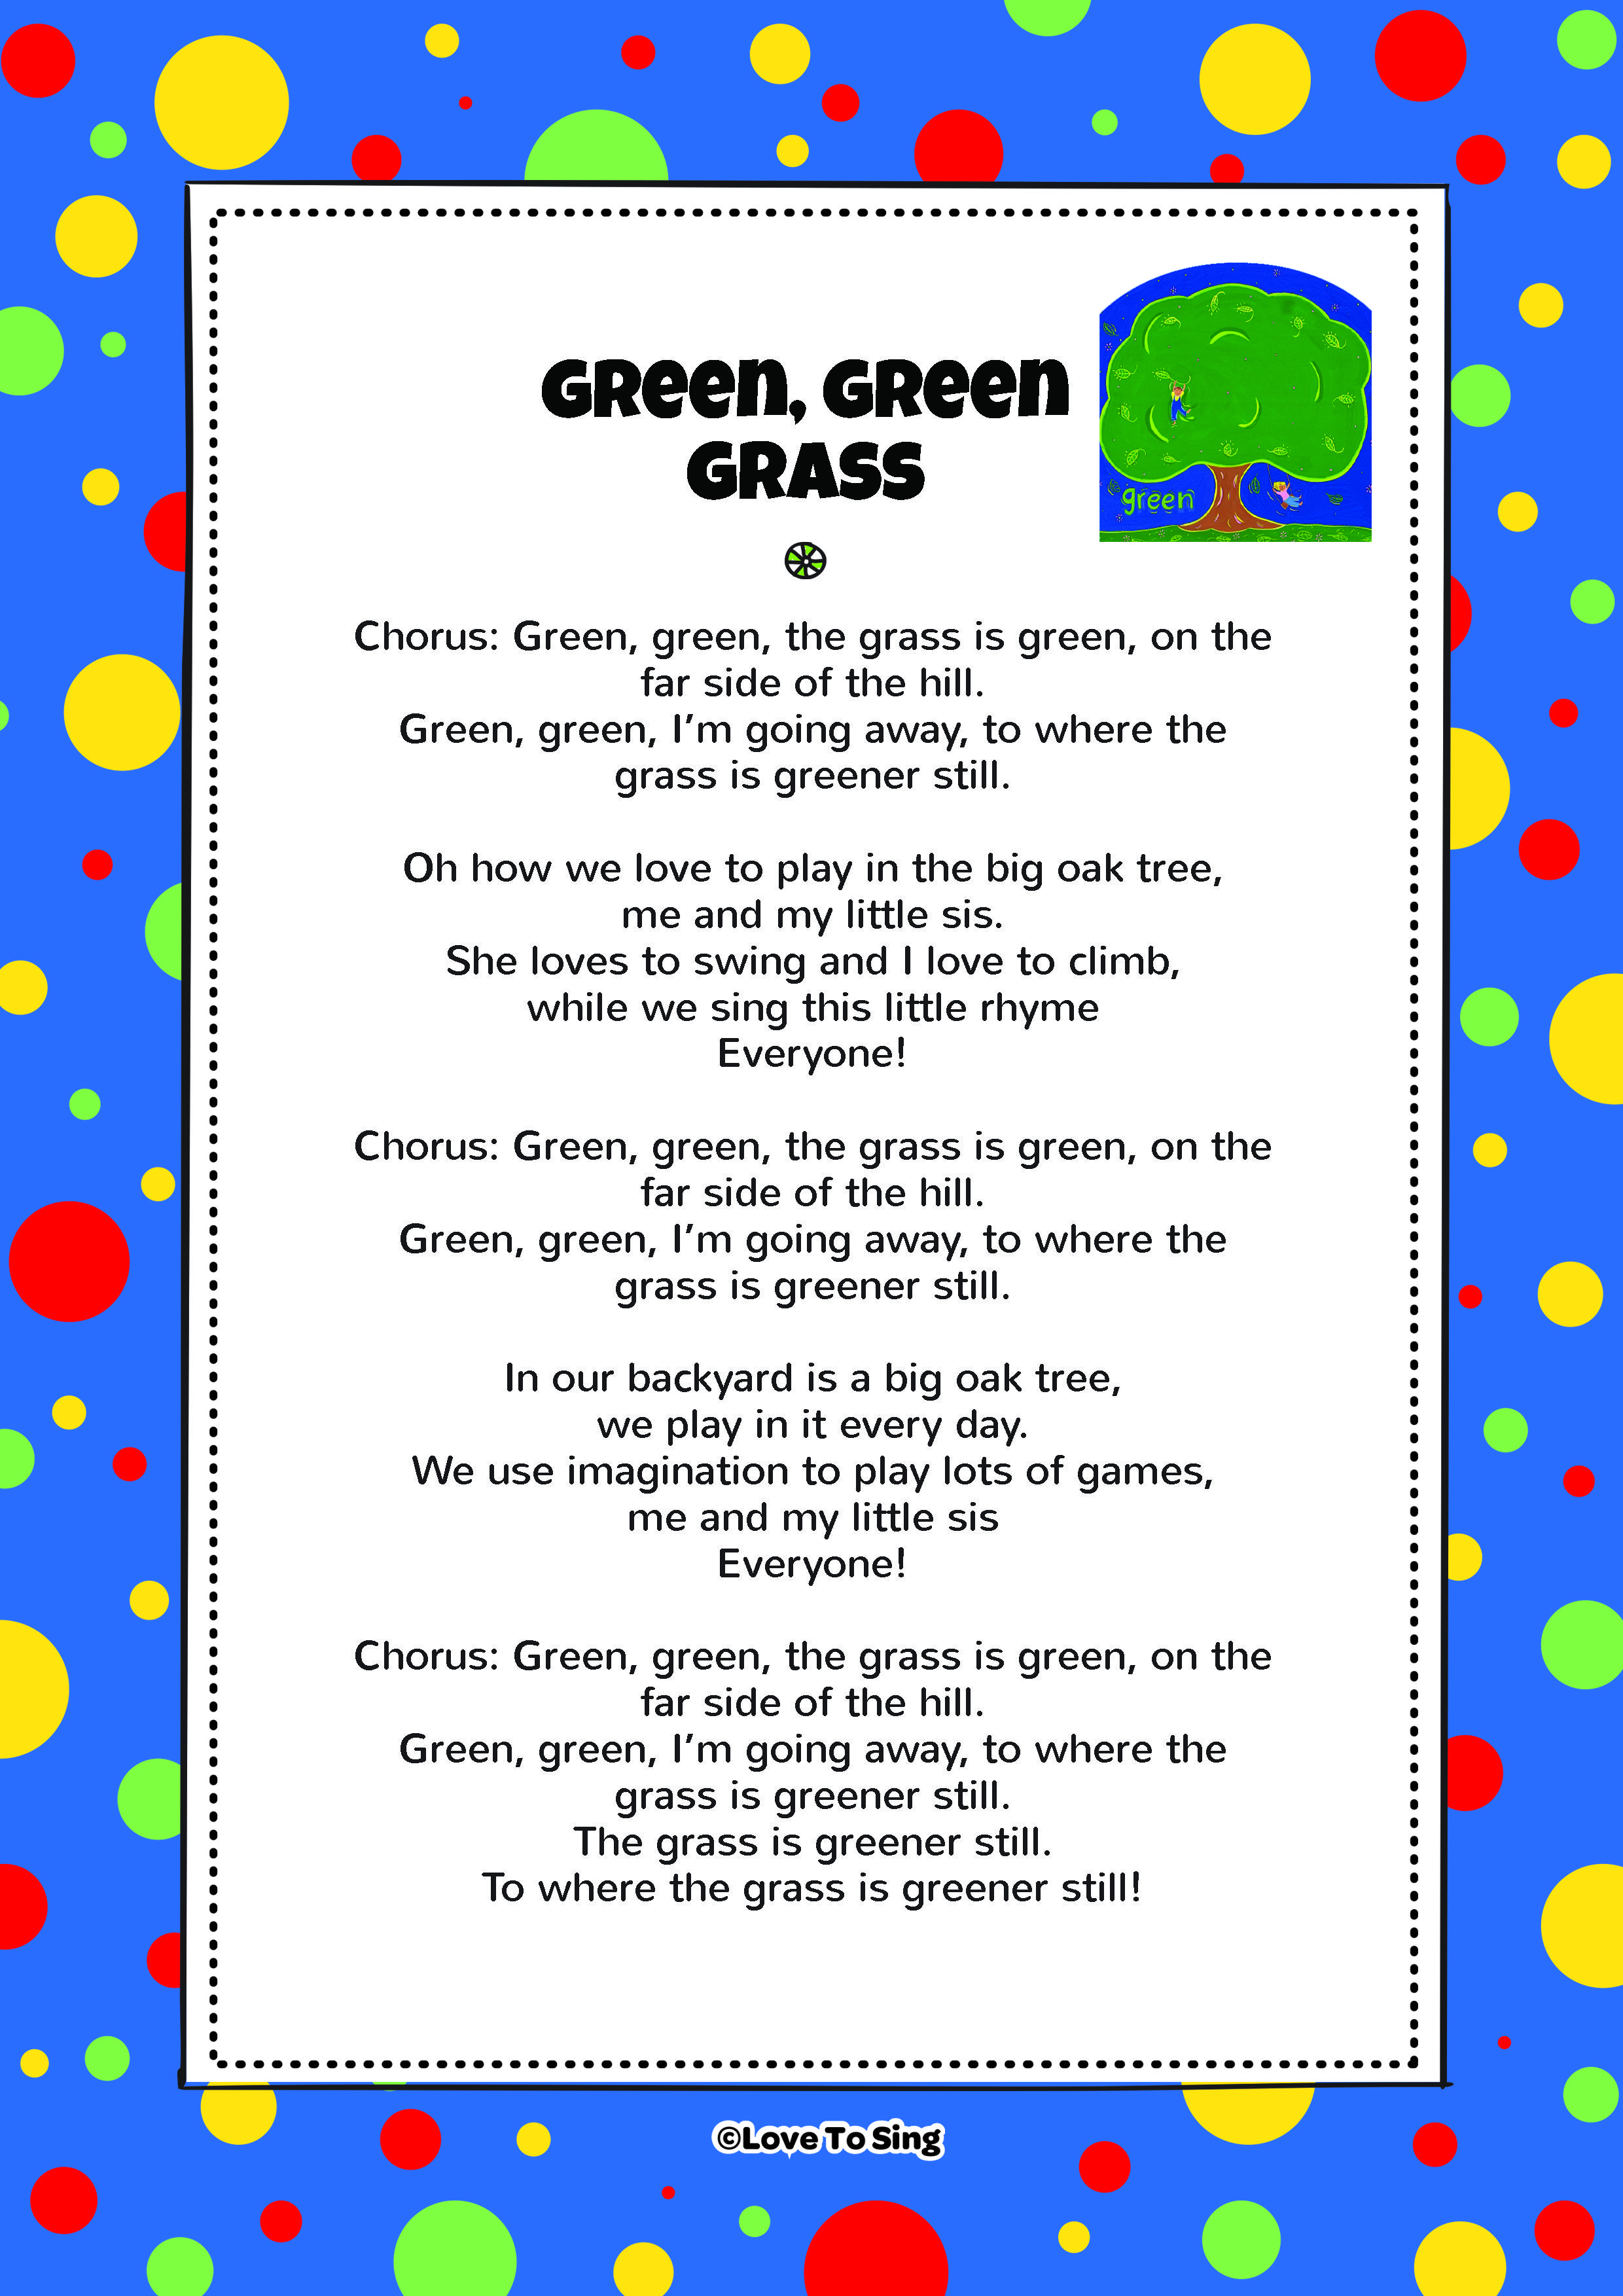 Download this popular kids video song green green grass with free with lyrics fun activities on youtube or listen on itunes or spotify